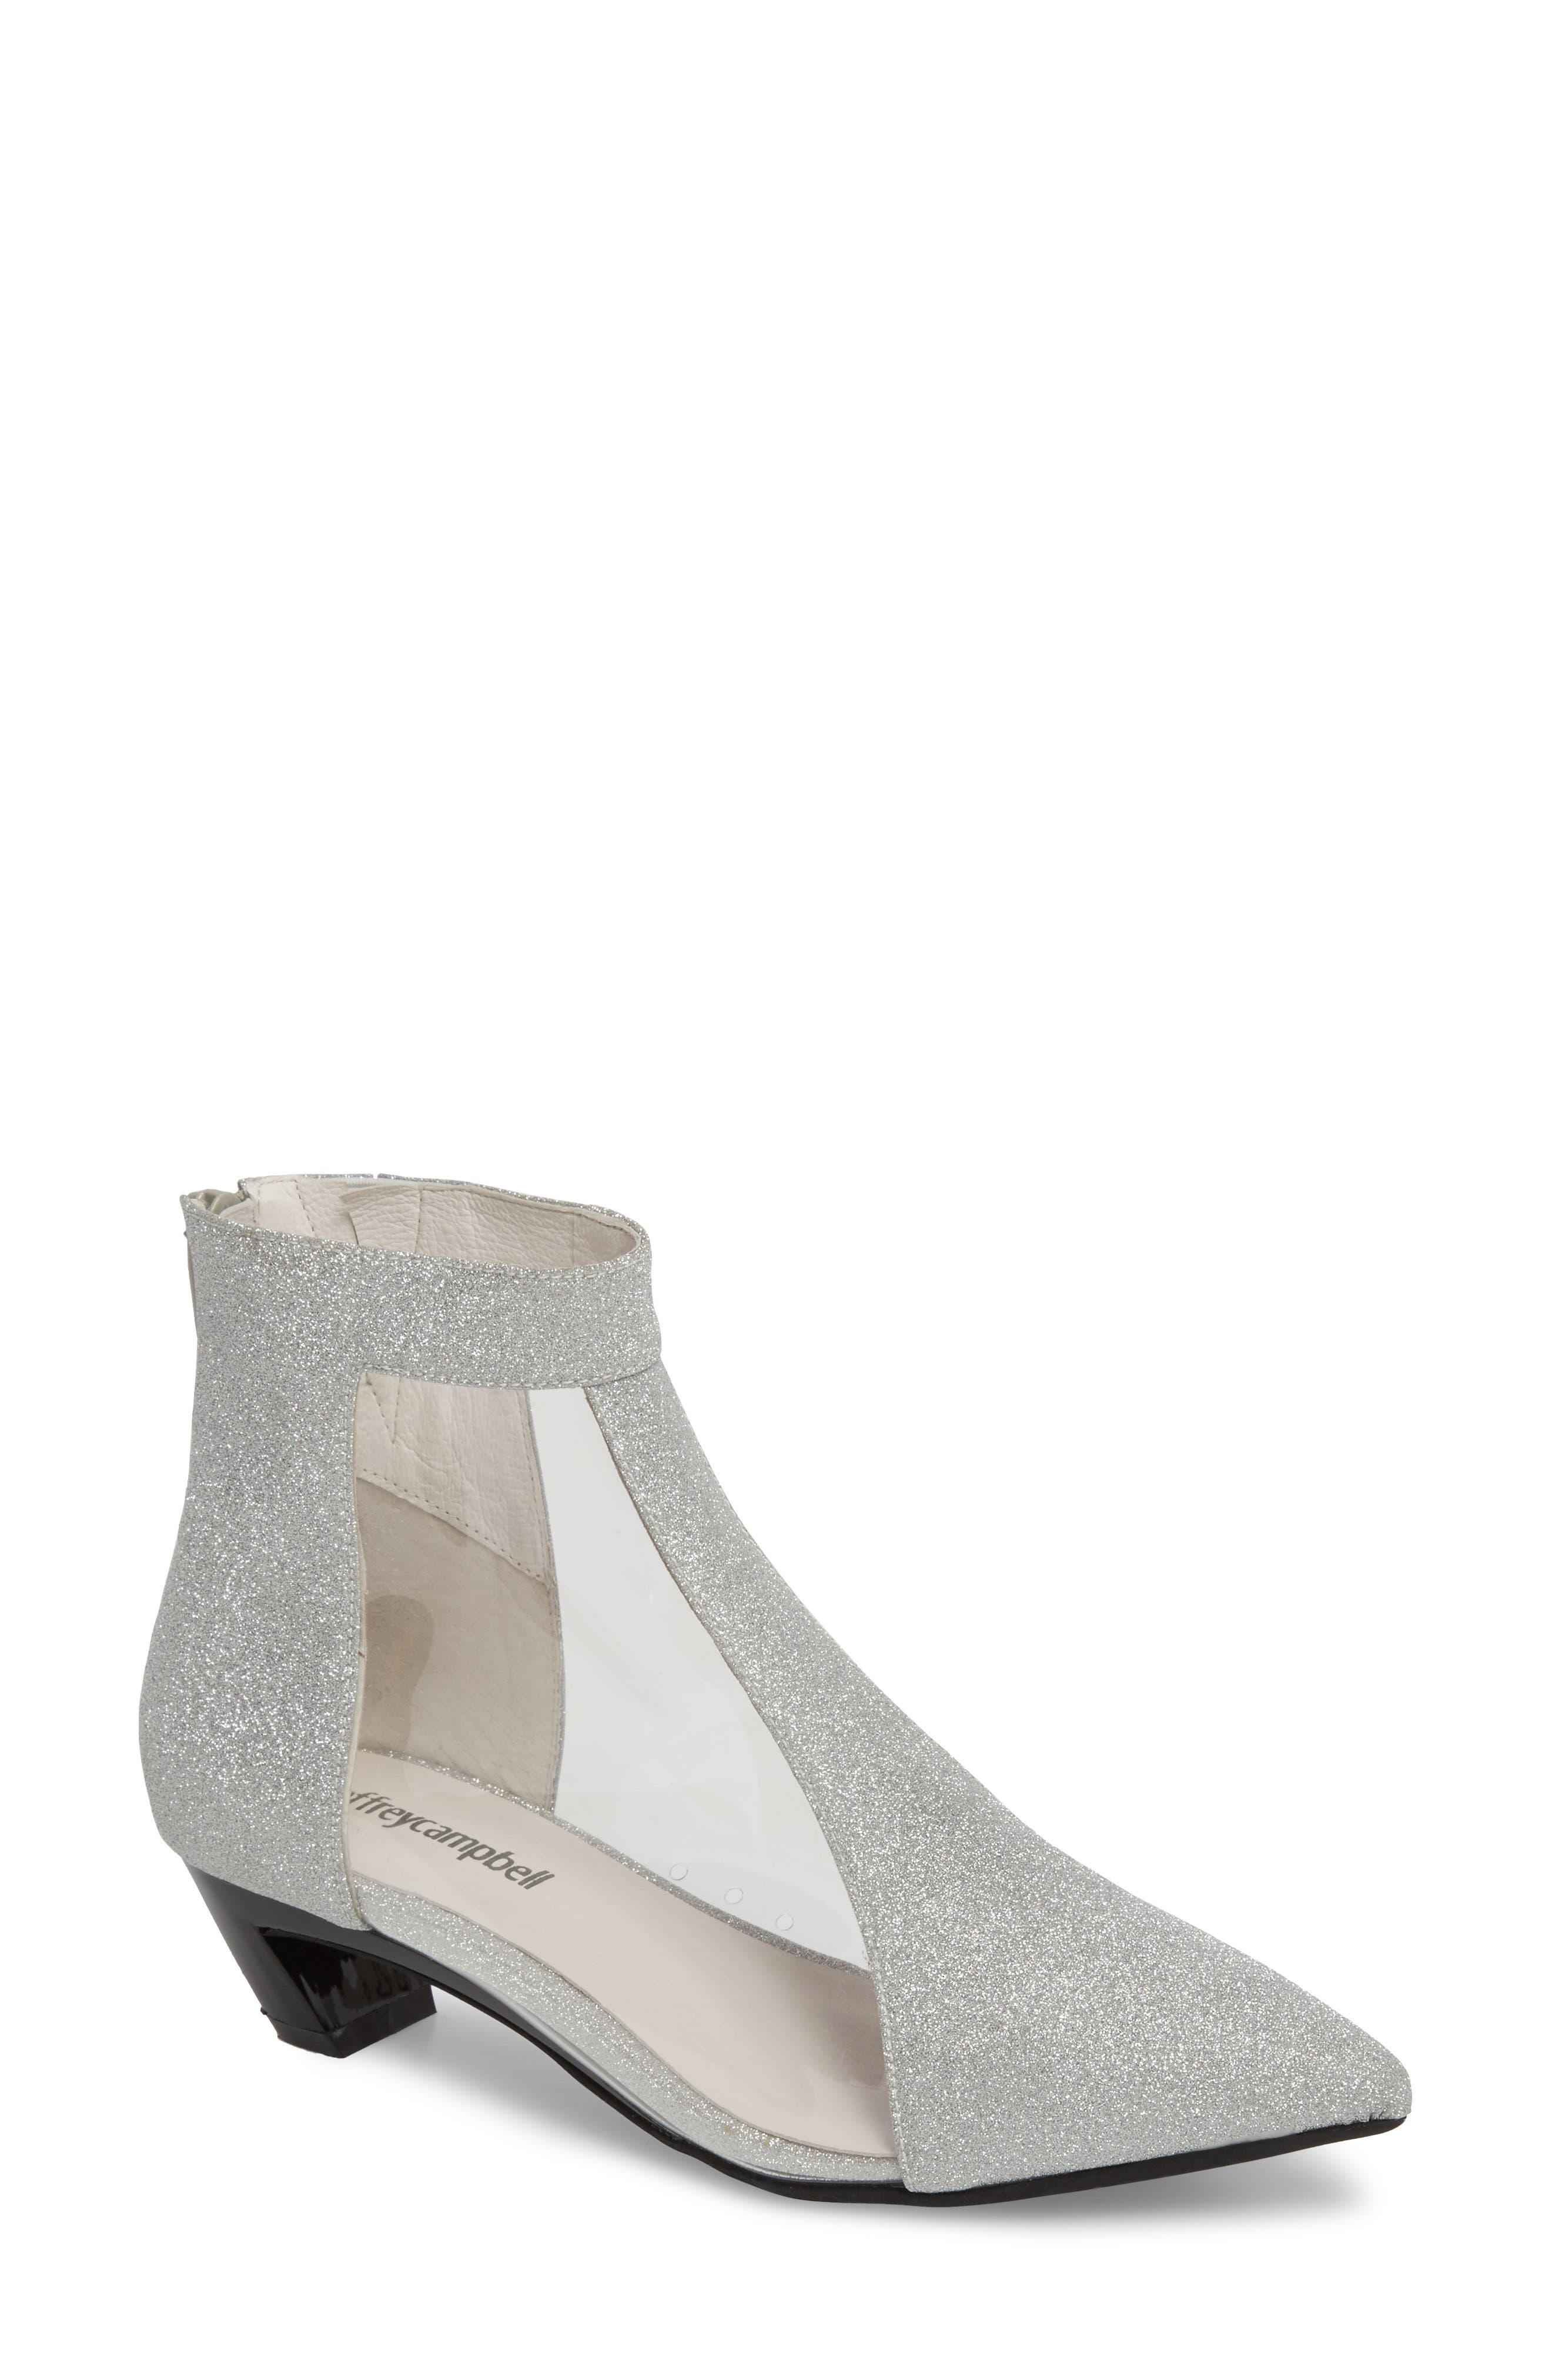 Mistress Bootie,                         Main,                         color, Silver Glitter Leather